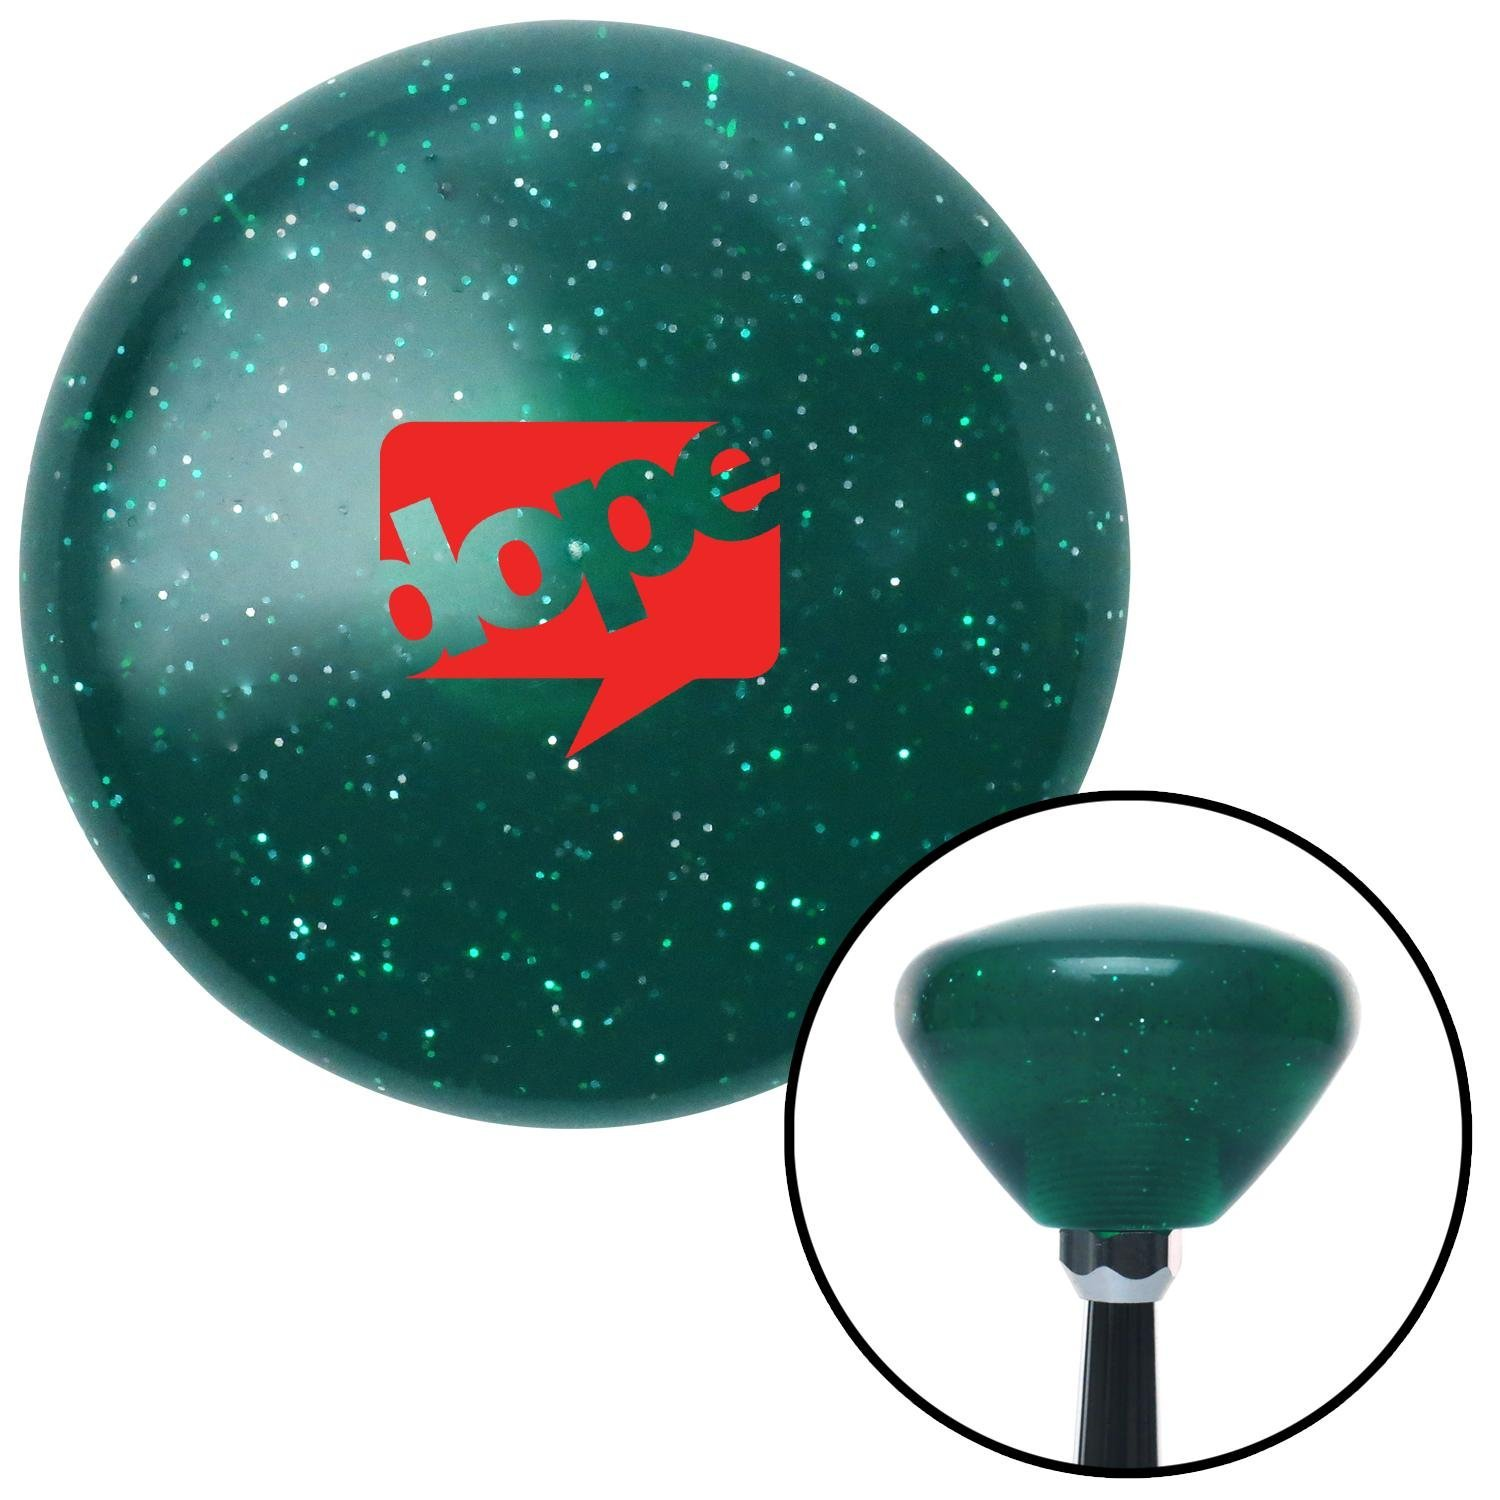 American Shifter 292469 Shift Knob Red Dope Bubble Green Retro Metal Flake with M16 x 1.5 Insert